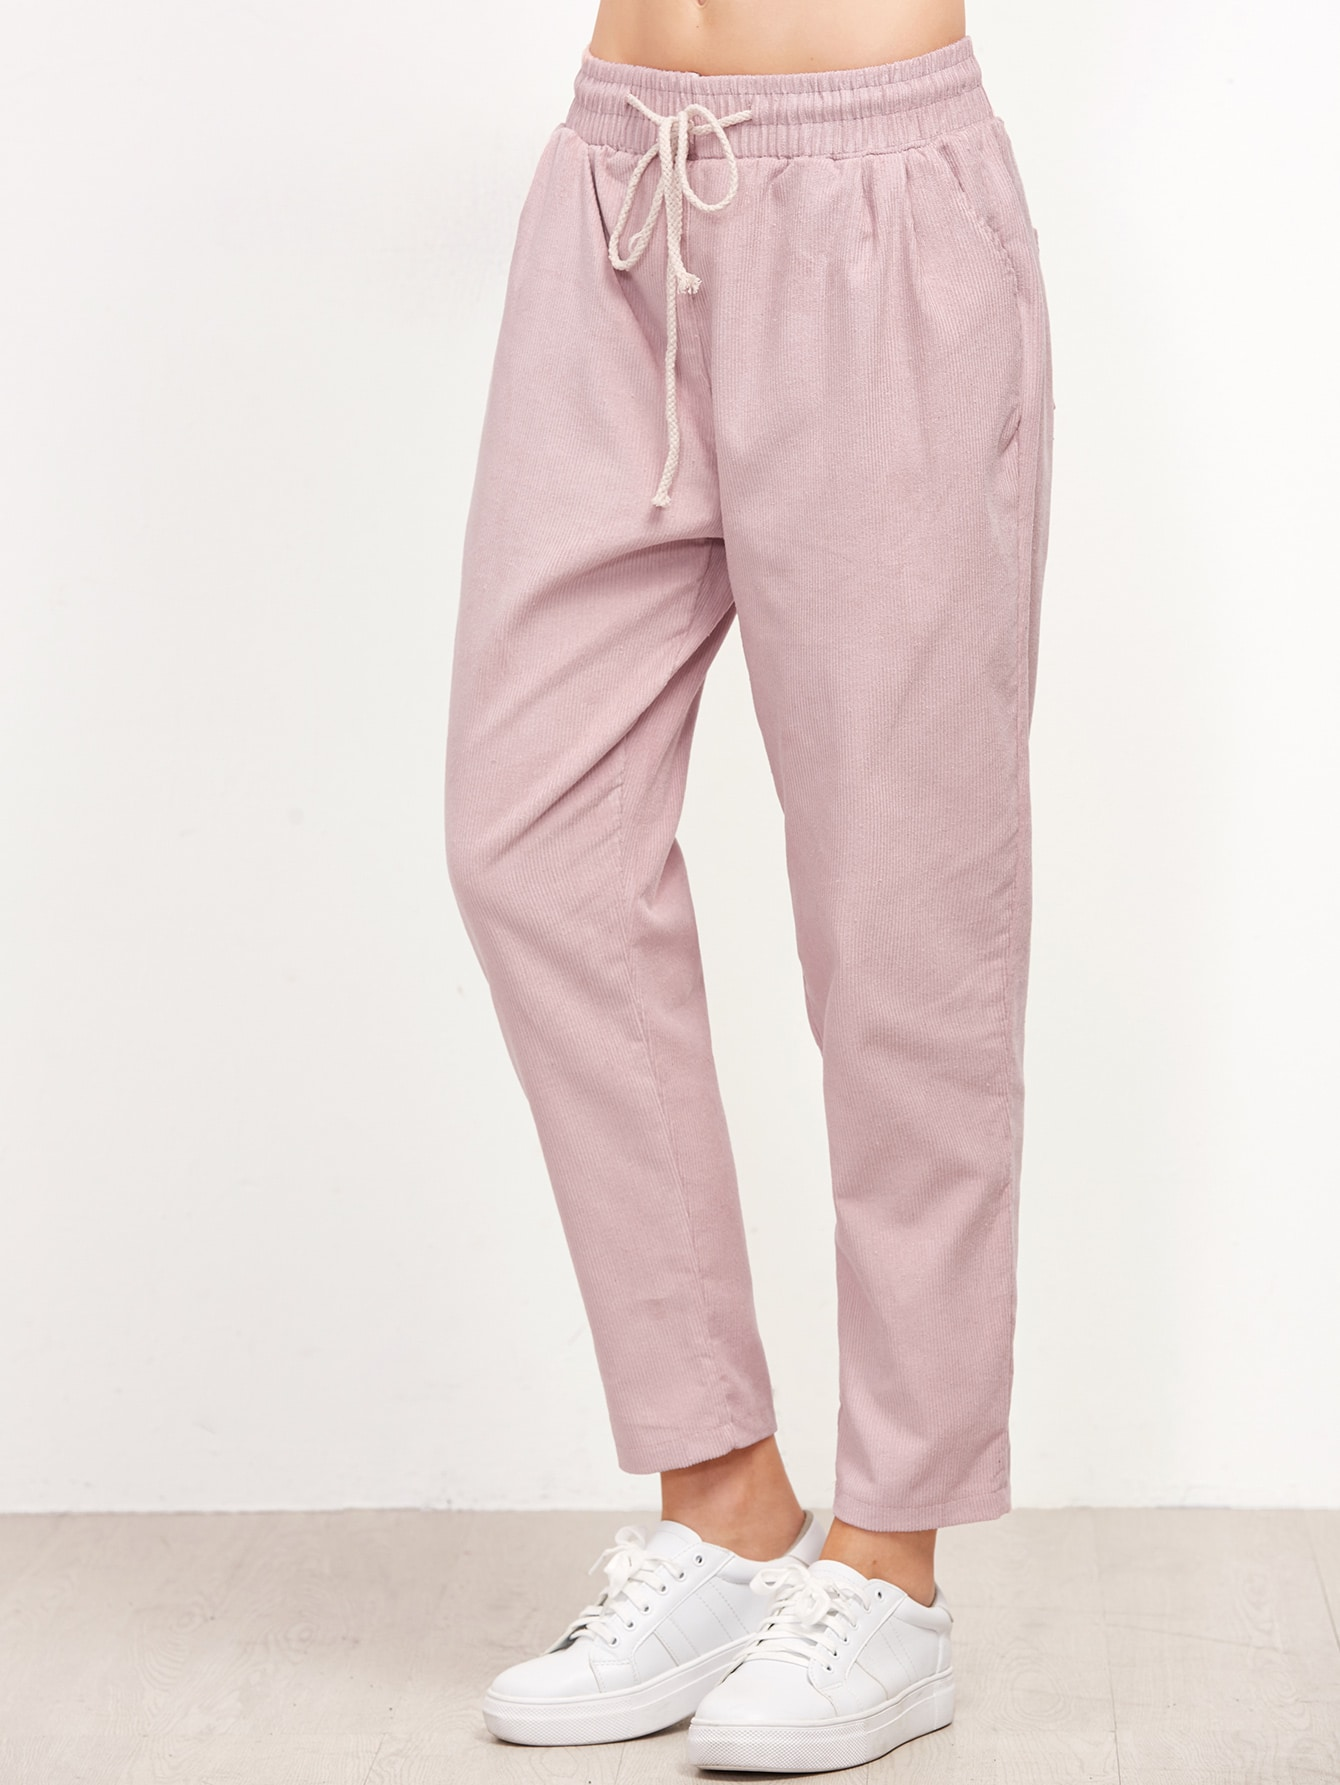 Pink Drawstring Waist Tapered PantsPink Drawstring Waist Tapered Pants<br><br>color: Pink<br>size: one-size